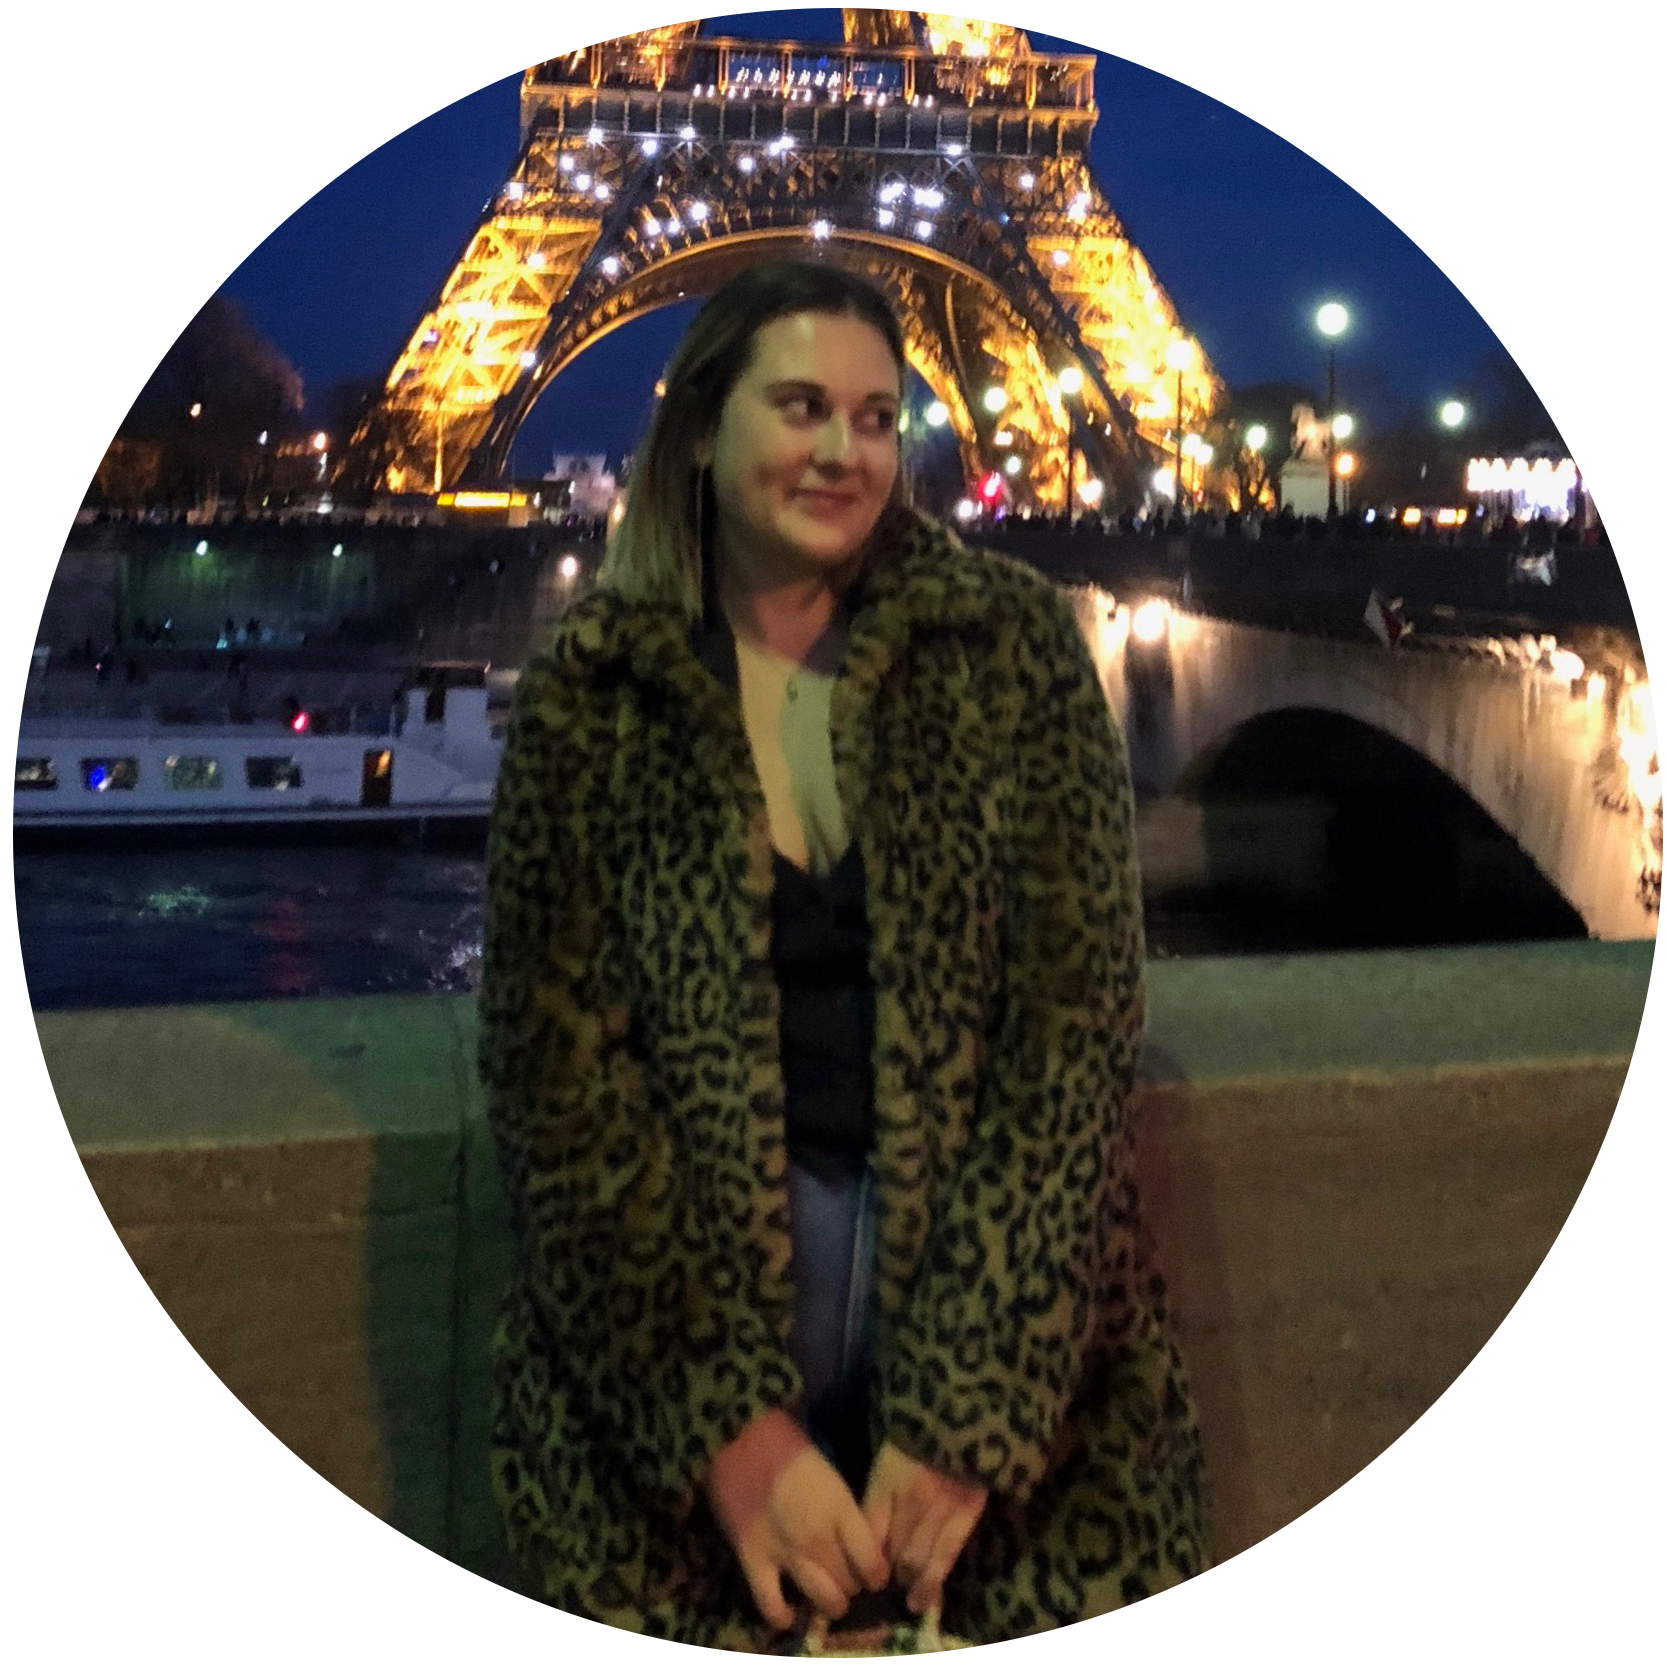 Liz Lemerand in front of the Eiffel Tower in Paris France.